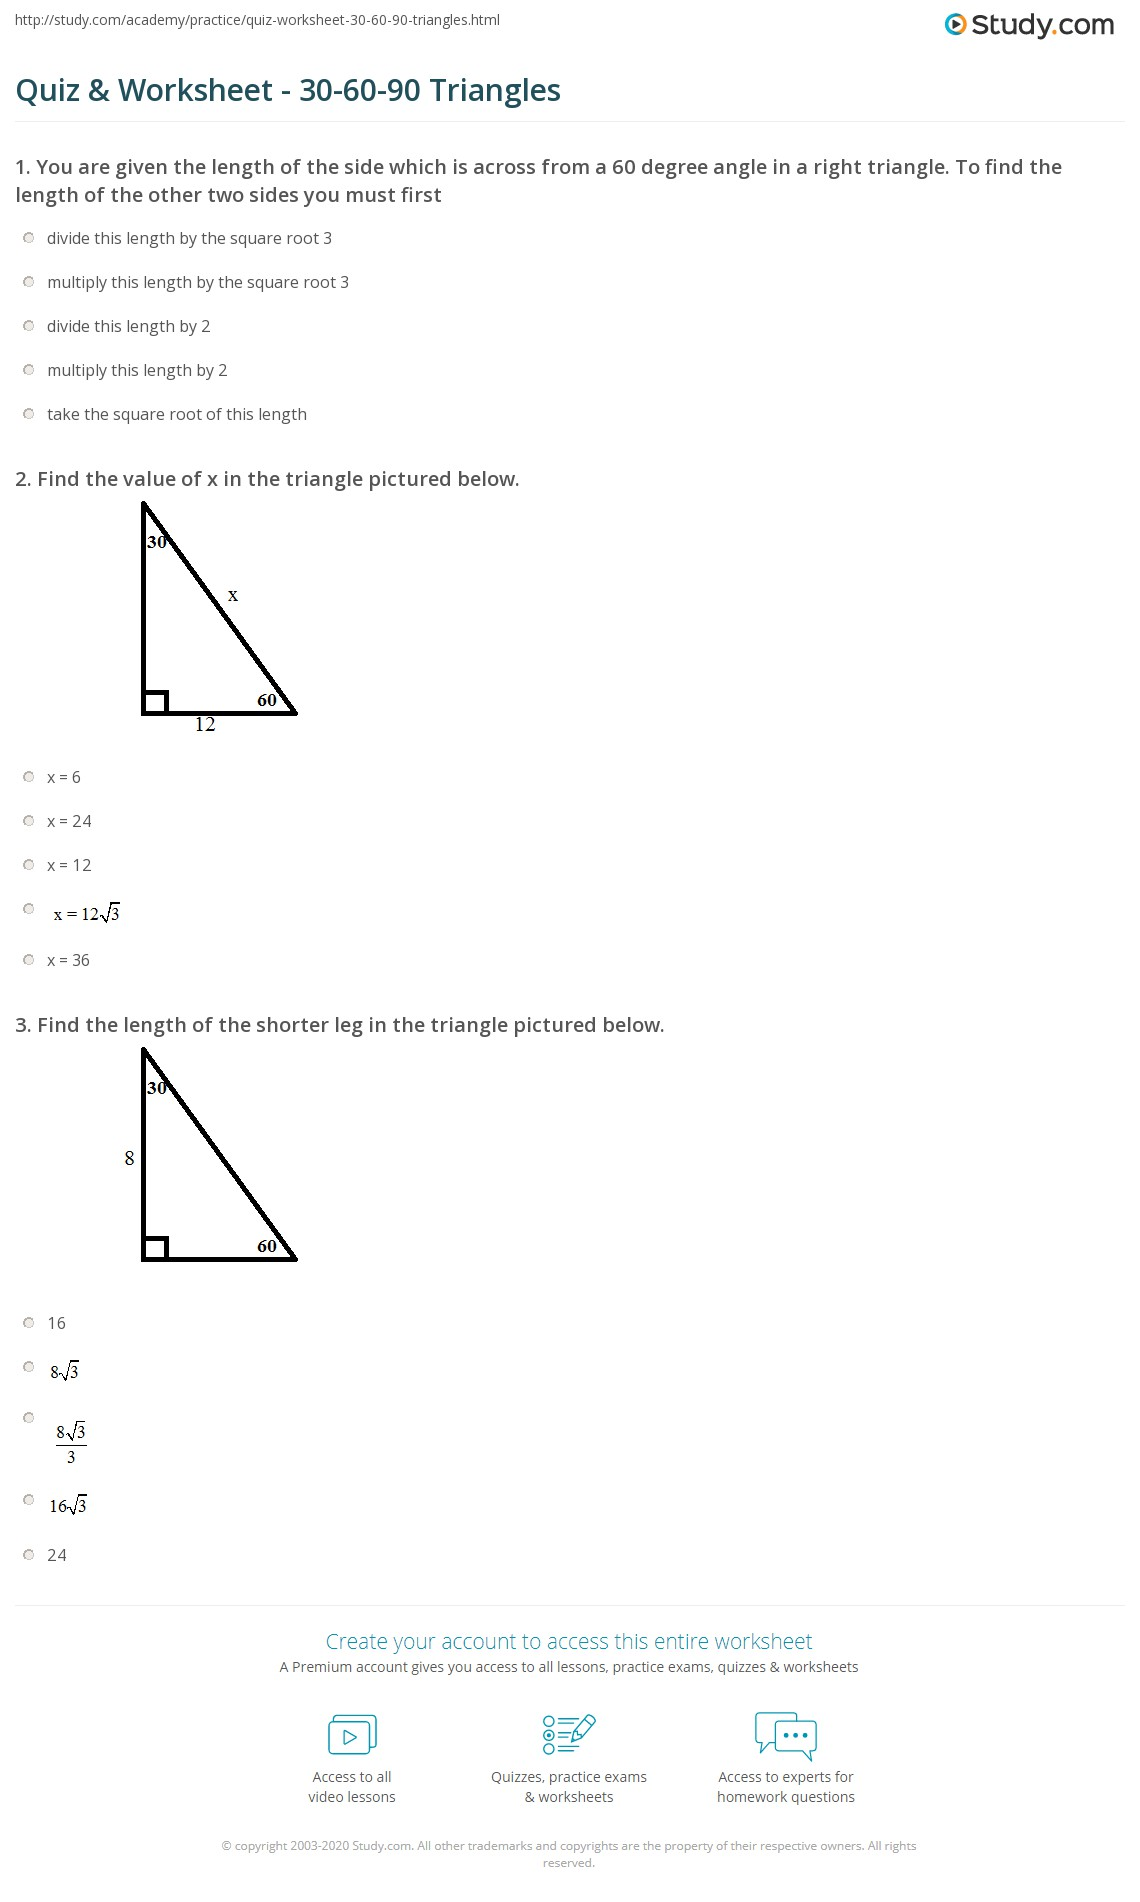 5 8 Homework 30 60 90 Triangles Key